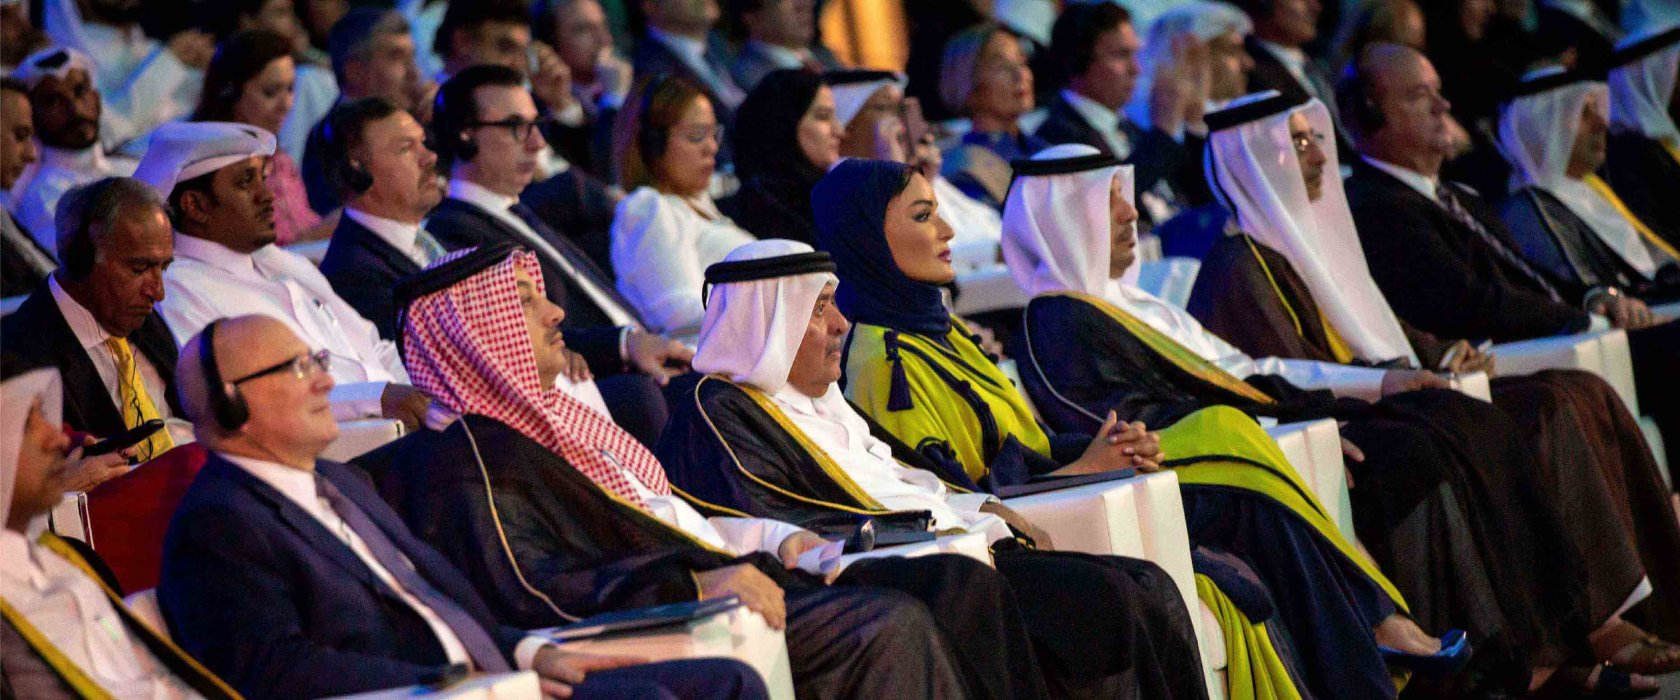 Her Highness Sheikha Moza bint Nasser attends 'Catalyzing The Future' celebration